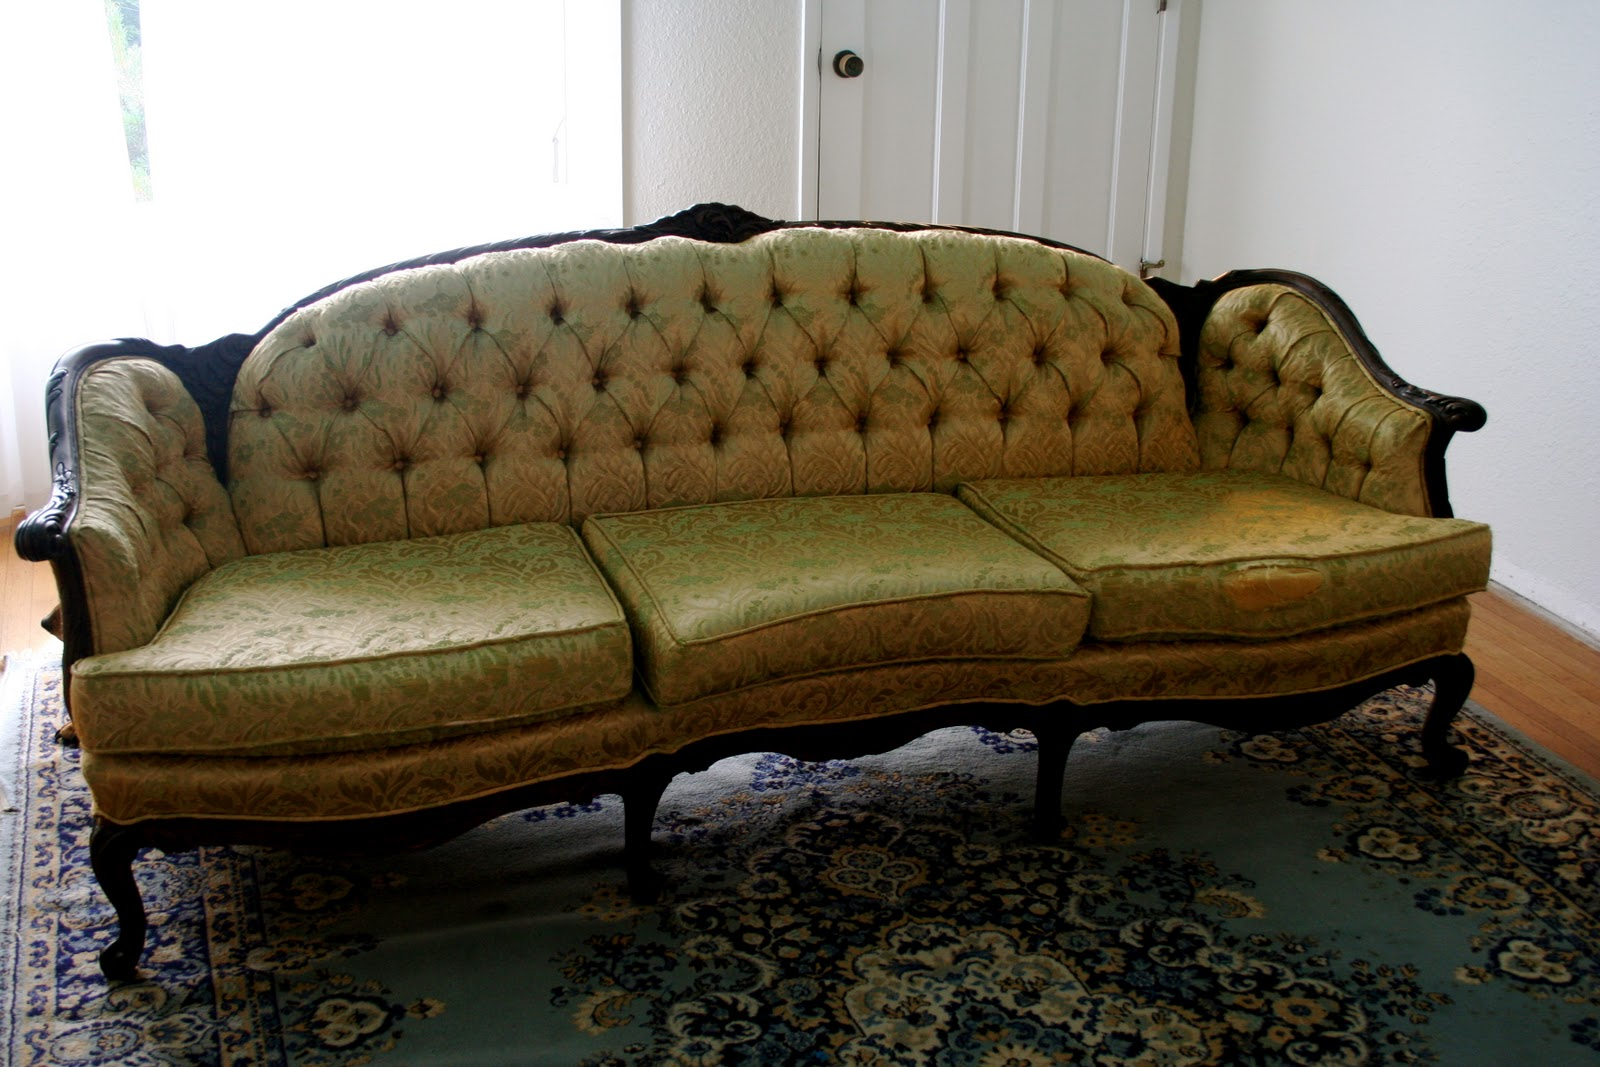 reupholster sofa in leather navy tufted a bit of sunshine before and after the antique